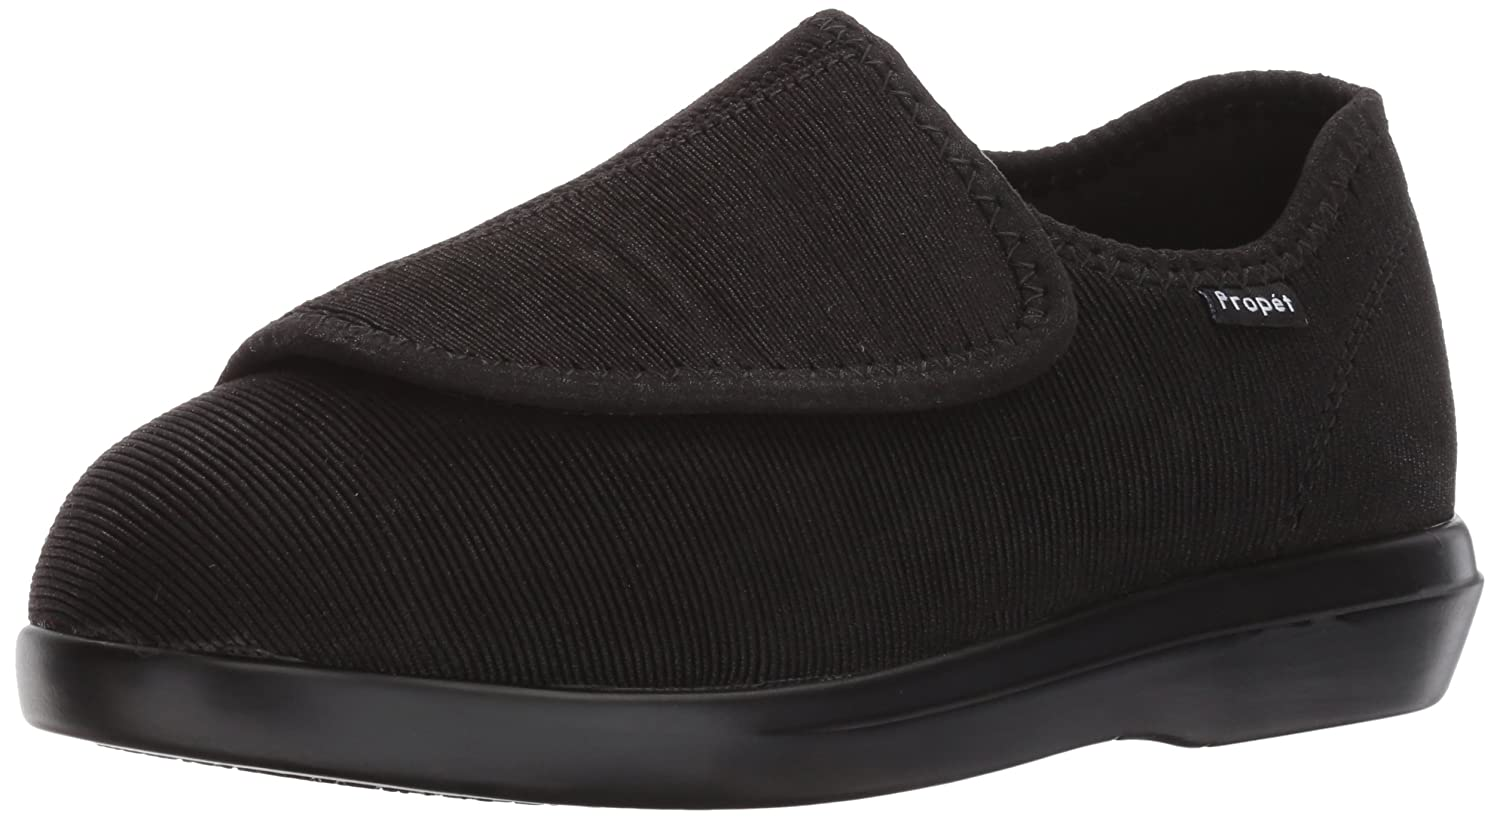 Propét Women's Cush N Foot Slipper B01NADQA93 8 N US|Black Corduroy